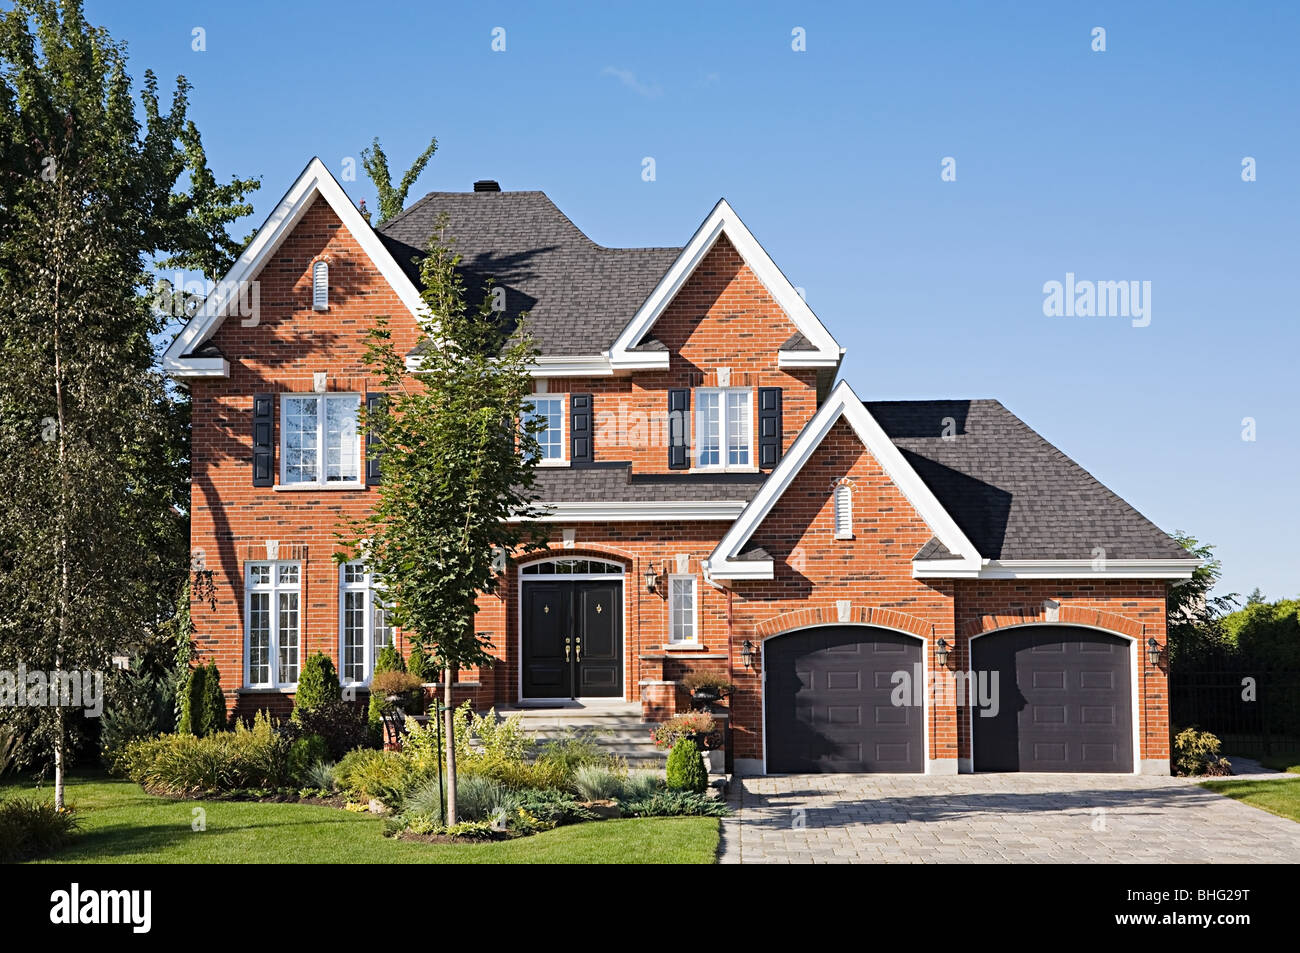 Exterior of a large house - Stock Image